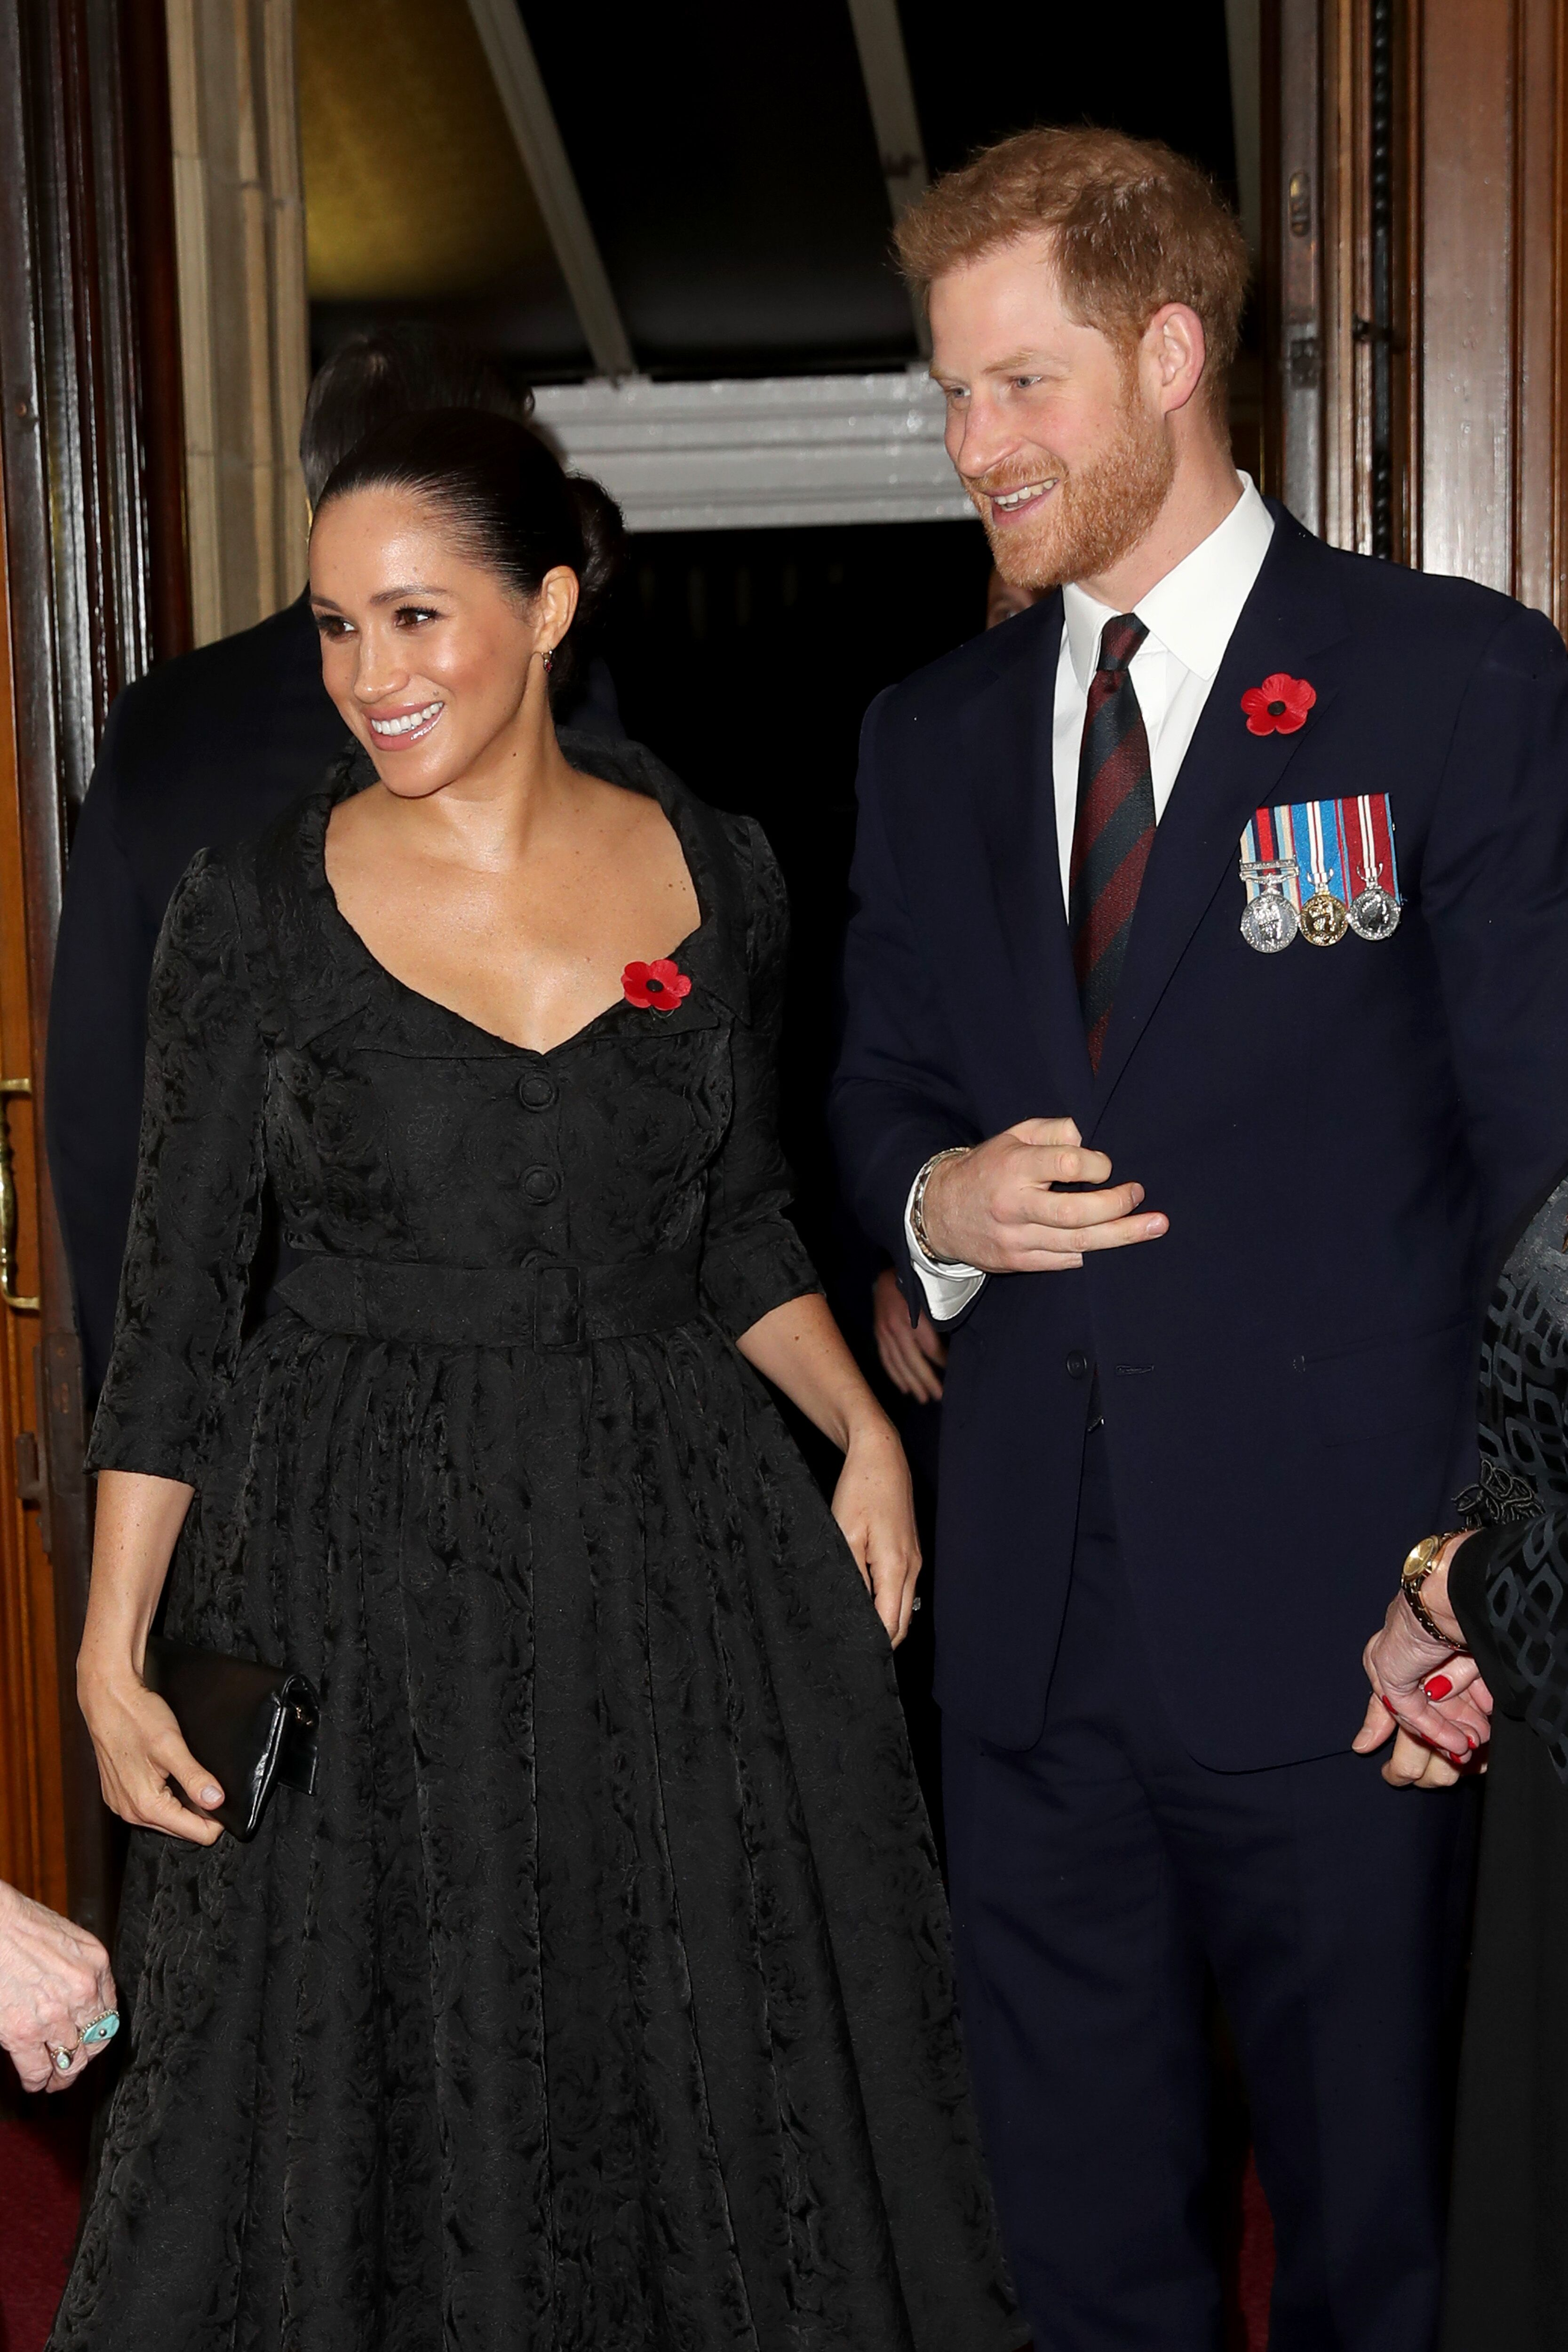 The Duke and Duchess of Sussex joined the Queen to the annual Royal British Legion Festival of Remembrance at the Royal Albert Hall | Source: Getty Images/GlobalImagesUkraine